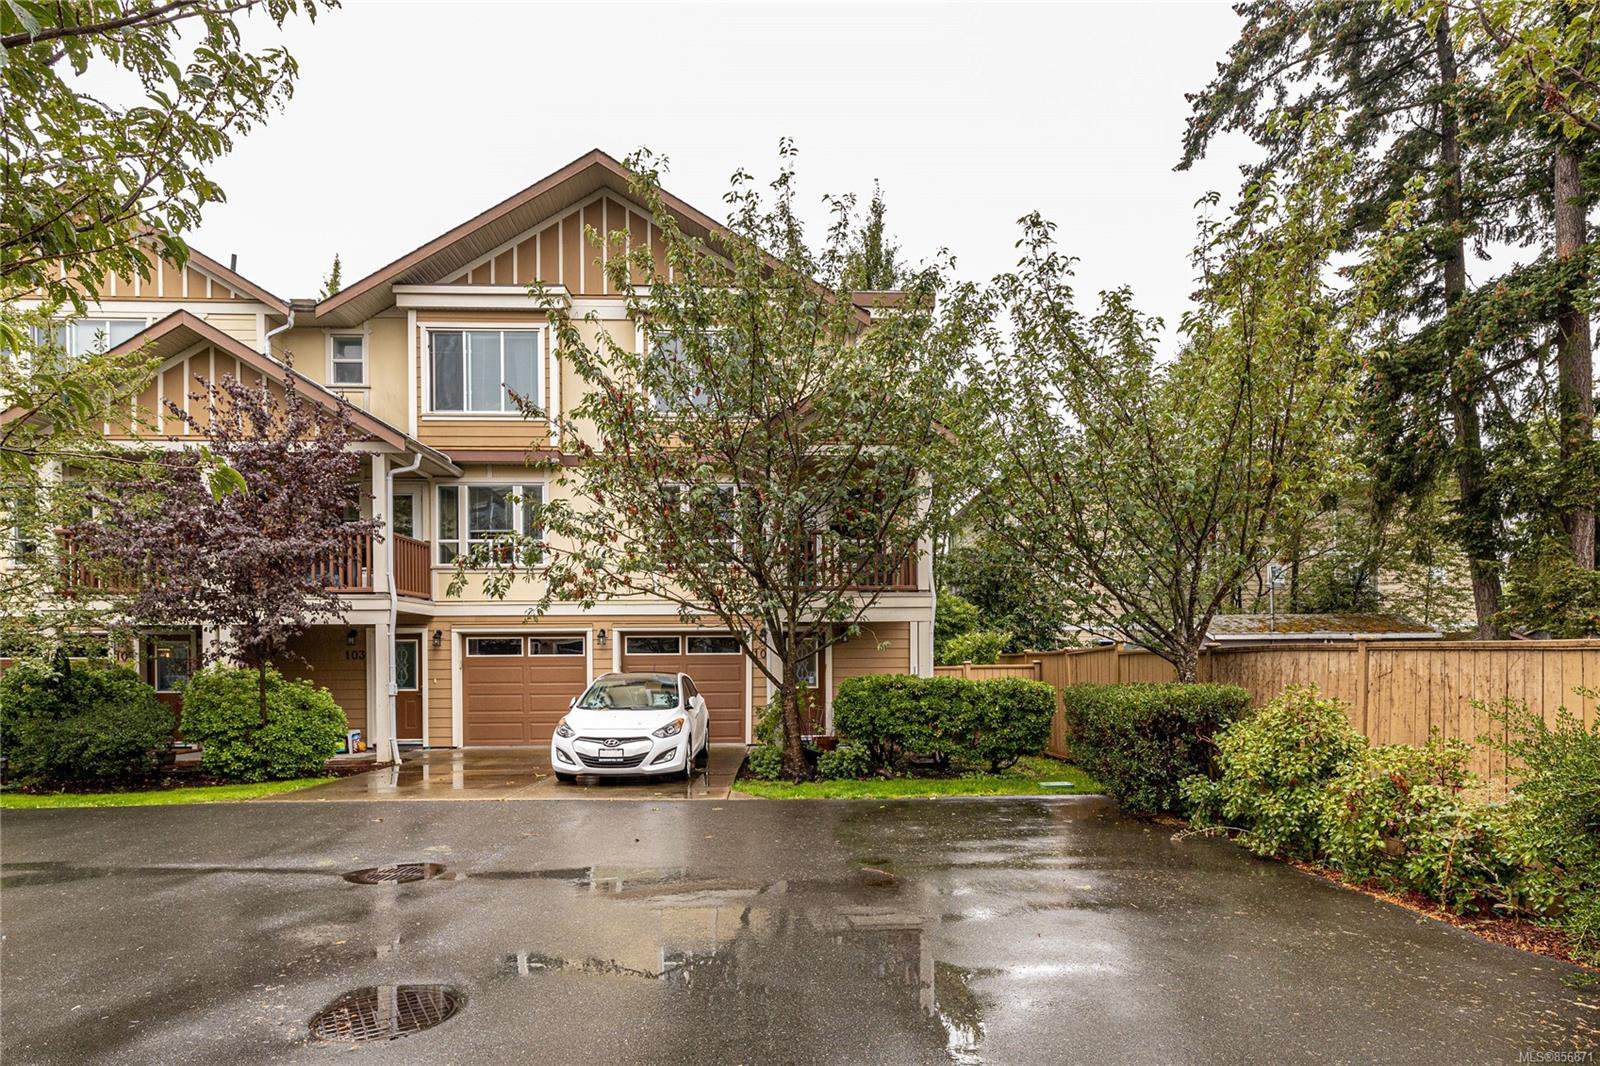 Main Photo: 101 827 Arncote Ave in : La Langford Proper Row/Townhouse for sale (Langford)  : MLS®# 856871